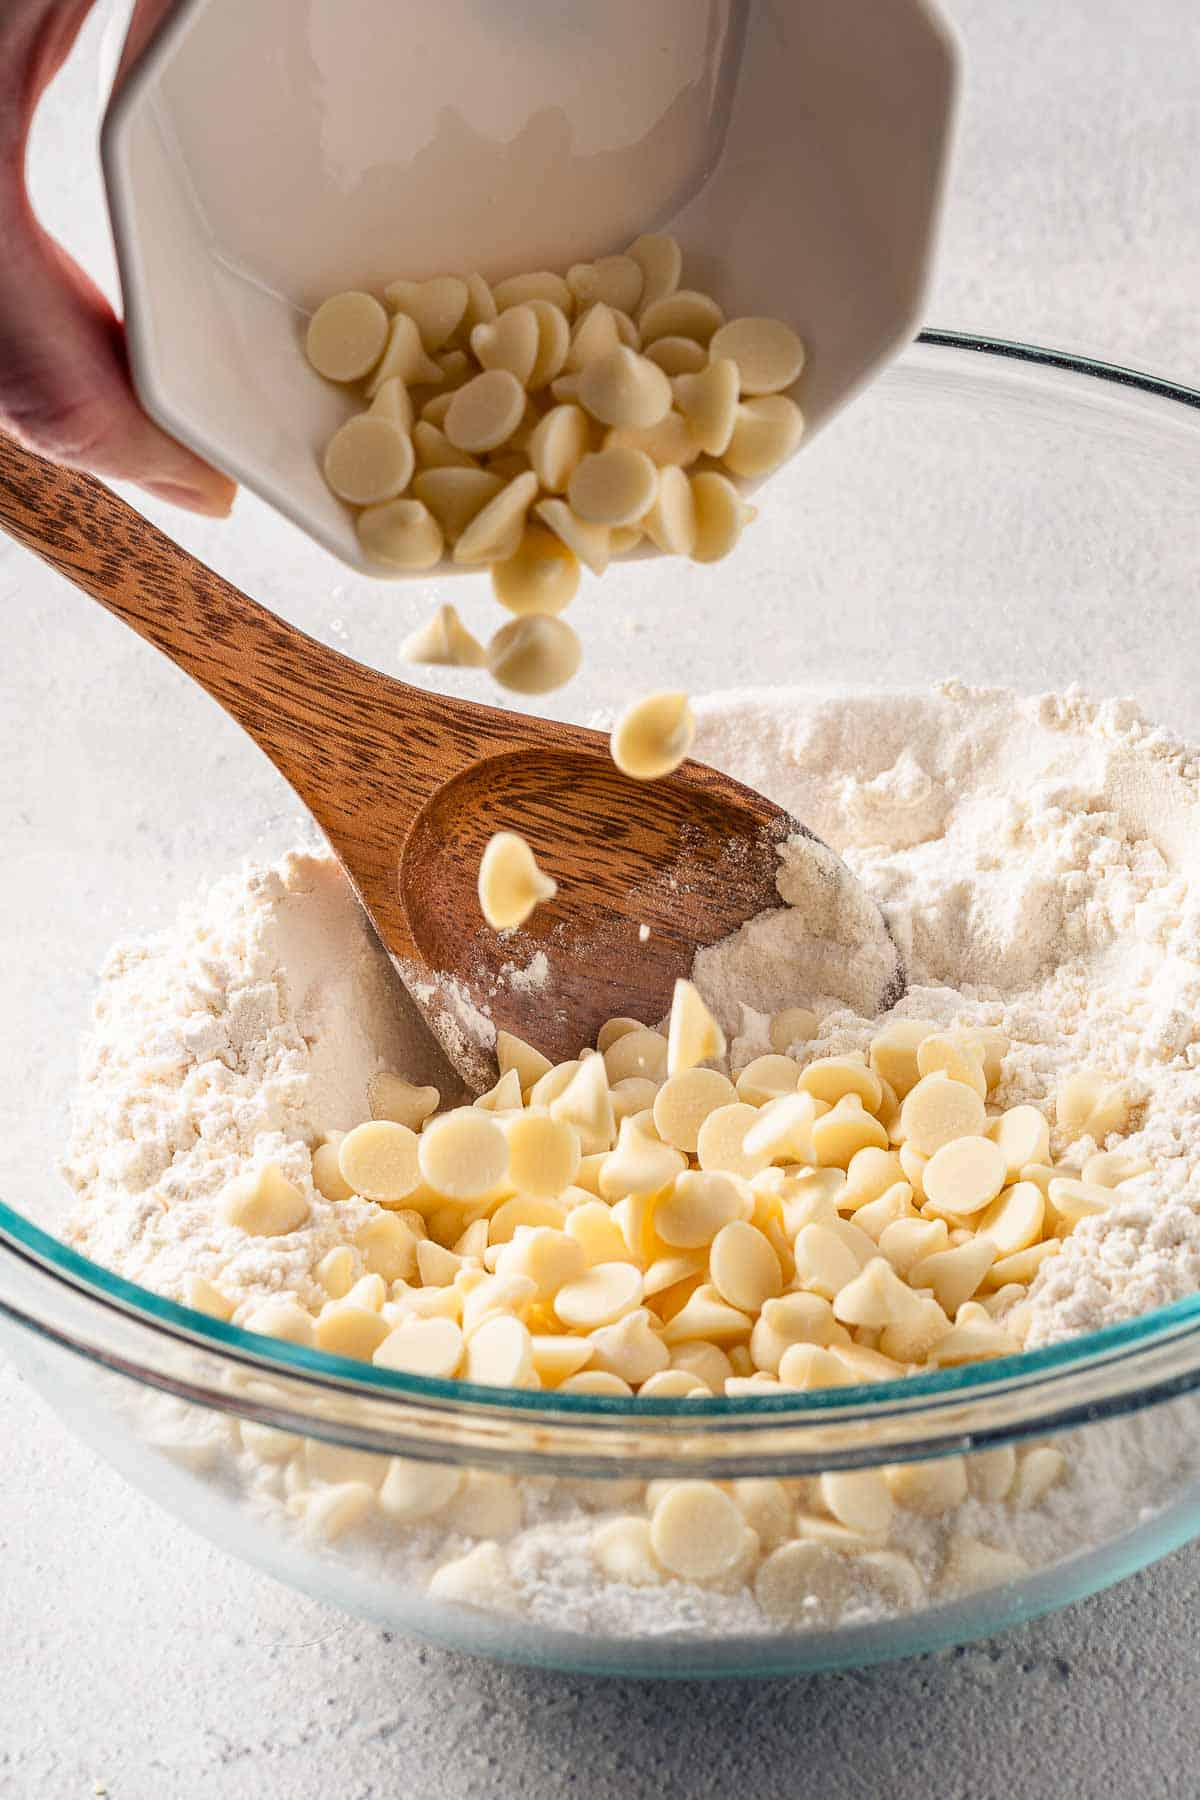 white chocolate chips being poured into dry scone ingredients